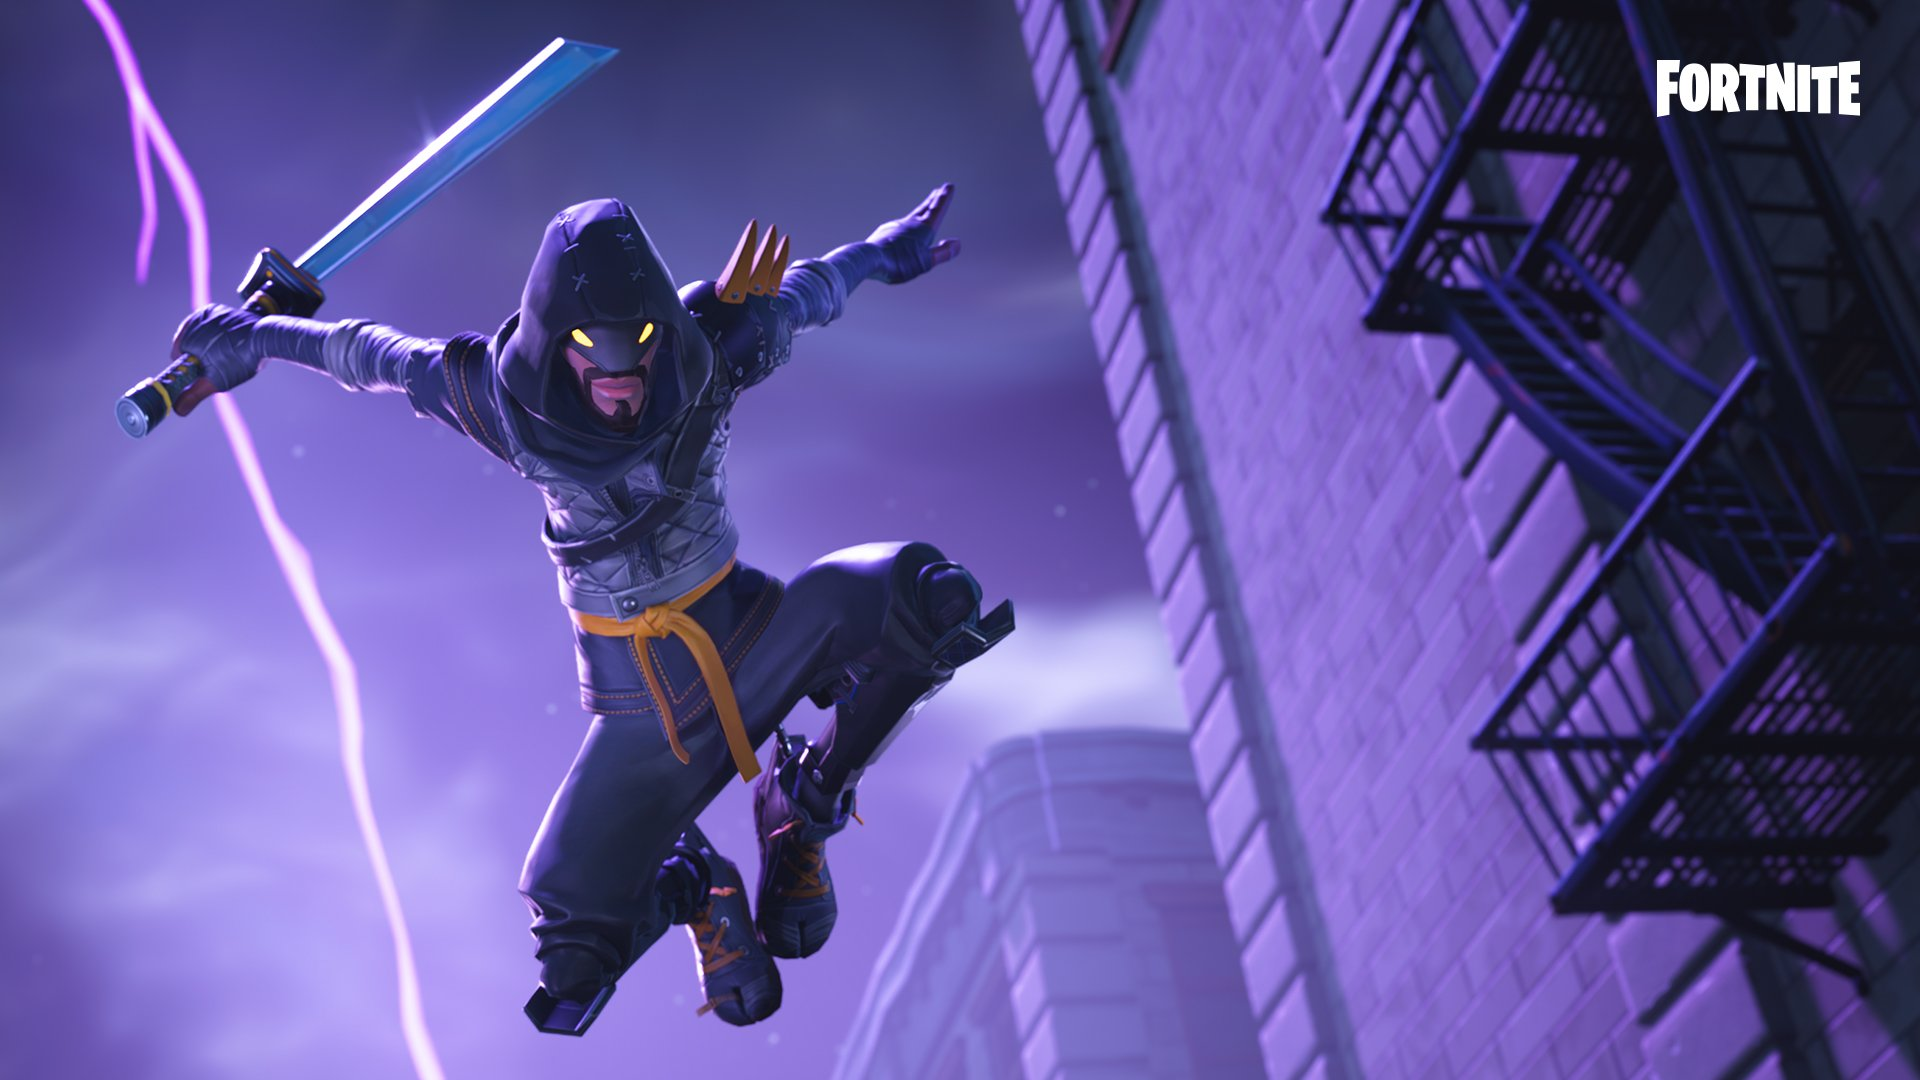 Fortnite on twitter fight alongside save the world 39 s new - Fortnite save the world wallpaper ...